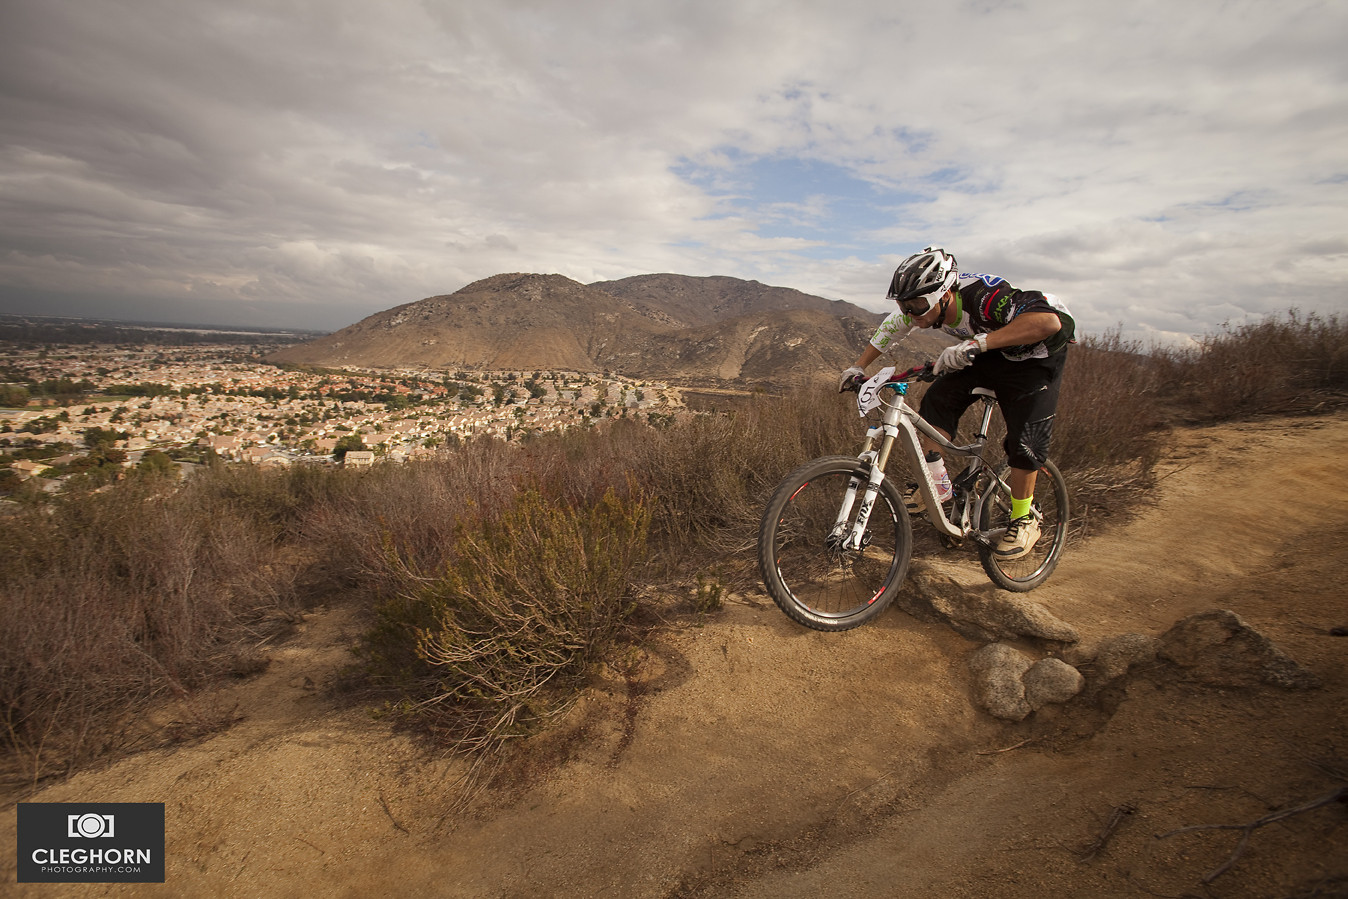 Chappy Fiene - Cleghorn Photography - Mountain Biking Pictures - Vital MTB